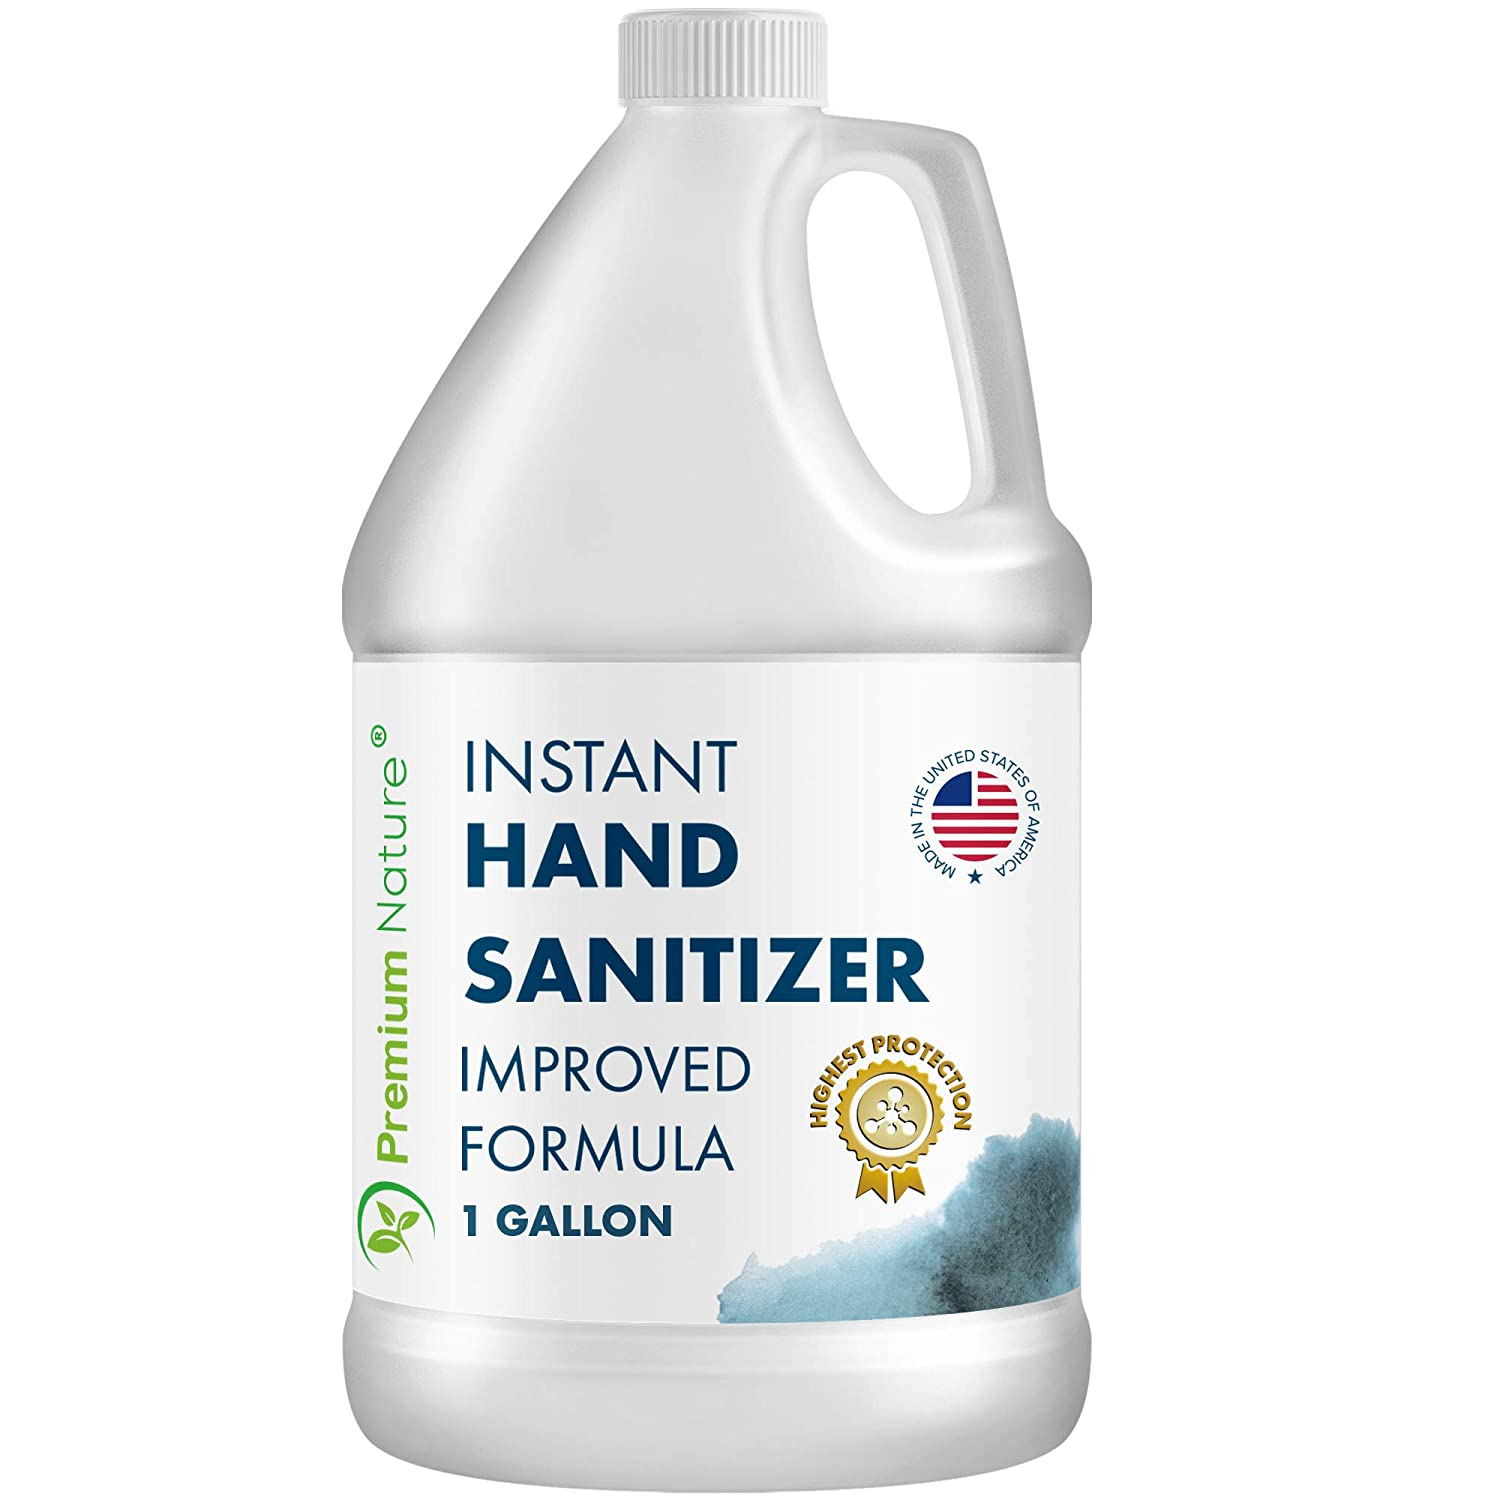 Instant Hand Sanitizer Gel - Value Size Advanced Natural Hand Sanitizer - Cleaner Portable Sanitizer Aloe Vera Moisturizer Disinfectant Anti Germ Sanittizer Refill Packaging May Vary (1 Gallon)